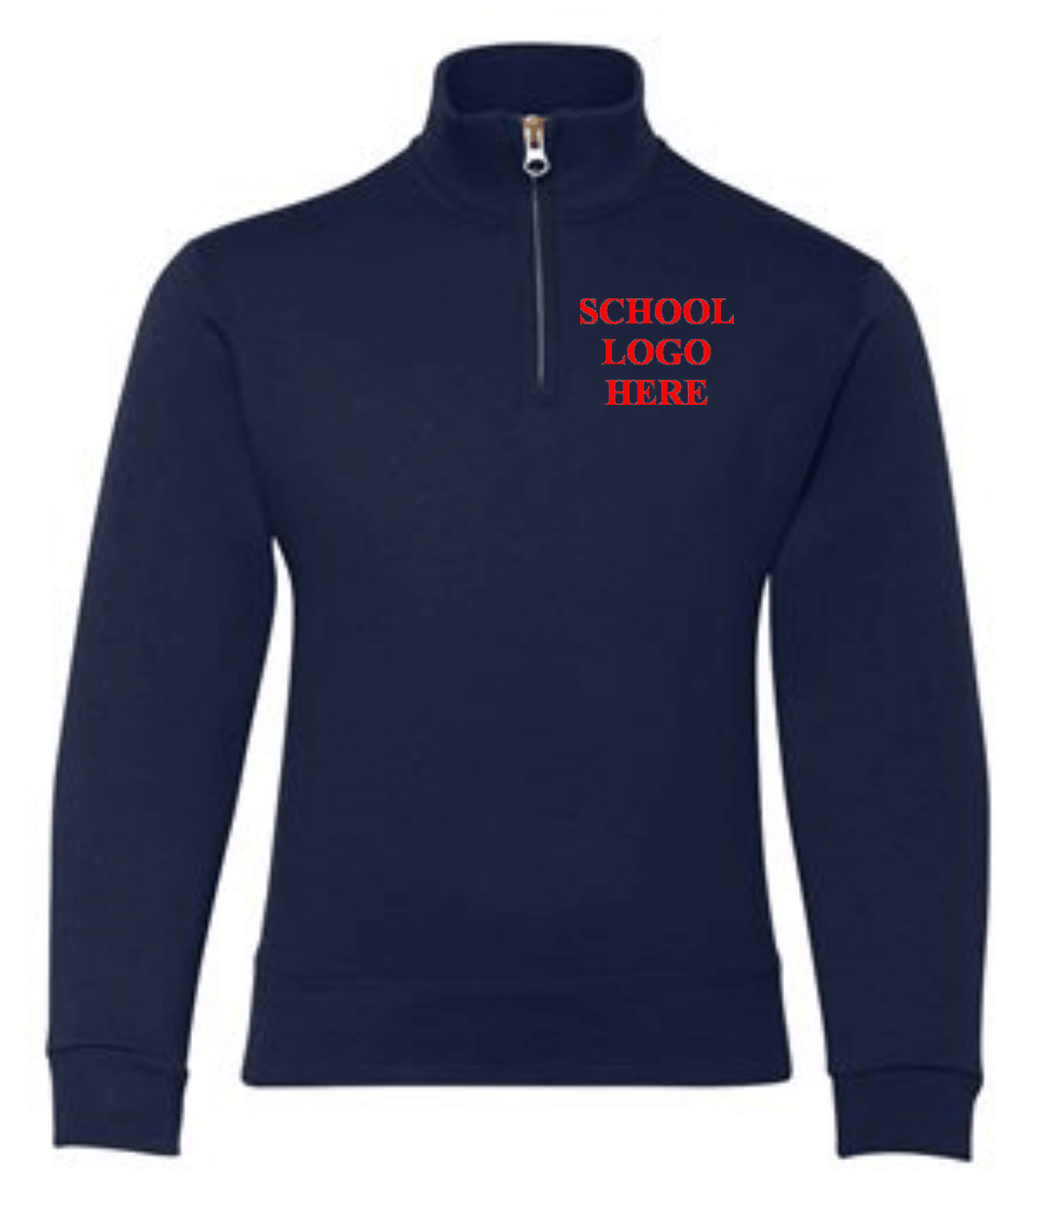 Mater Academy School Uniform 1/4 Zip Navy Sweatshirt